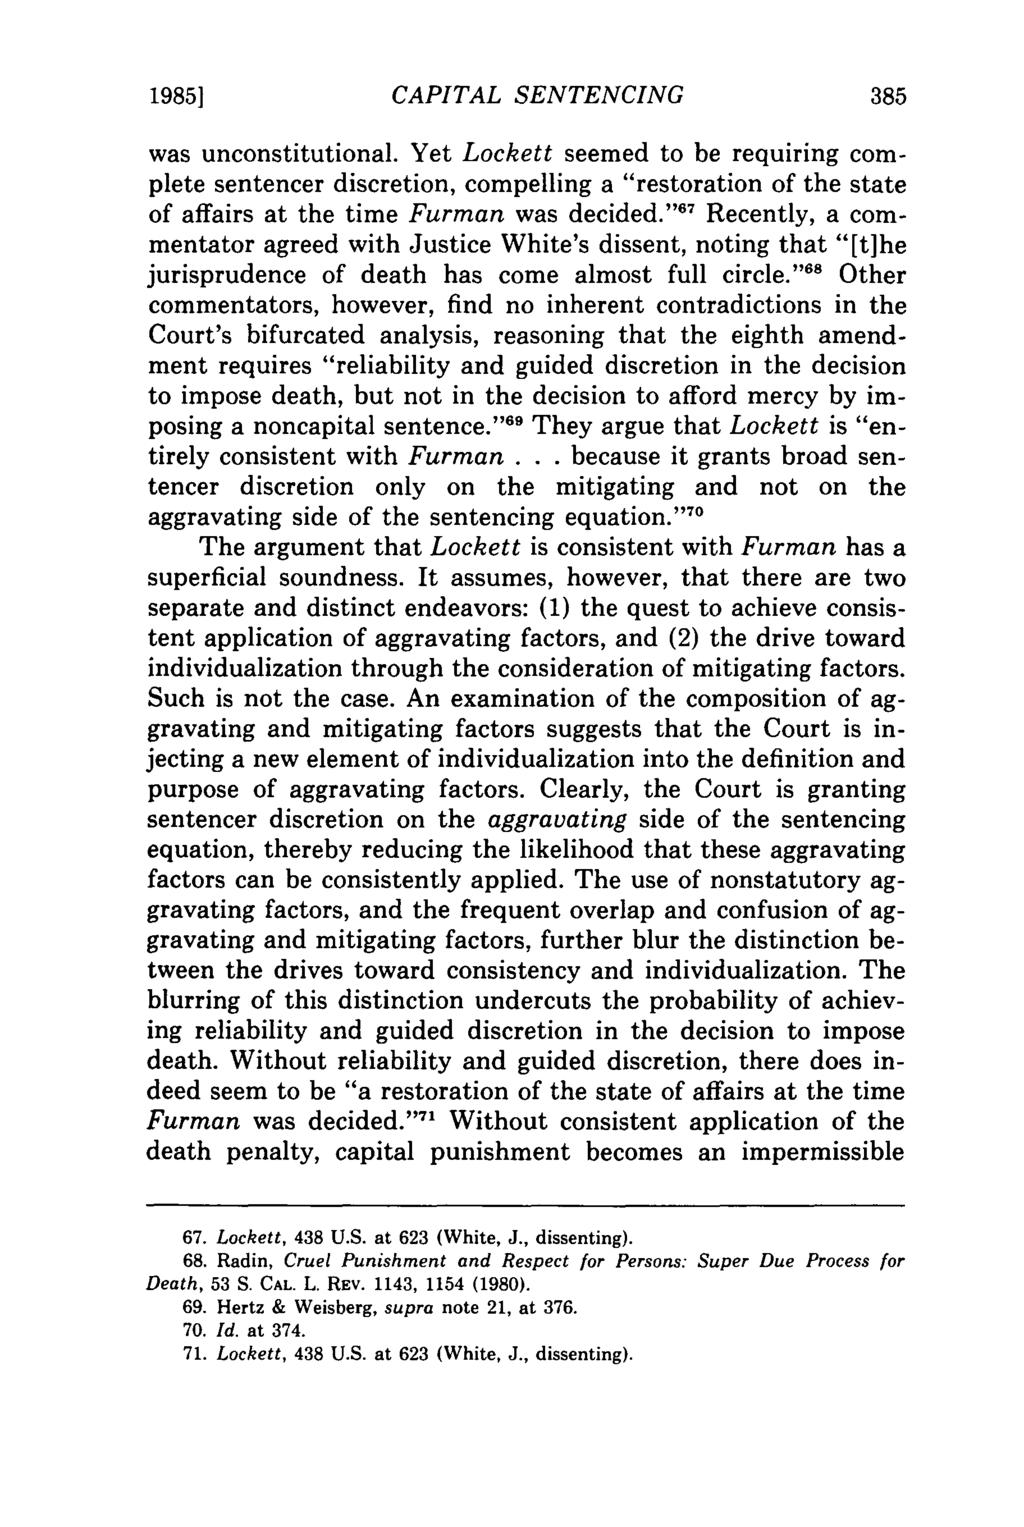 "19851 CAPITAL SENTENCING was unconstitutional. Yet Lockett seemed to be requiring complete sentencer discretion, compelling a ""restoration of the state of affairs at the time Furman was decided."